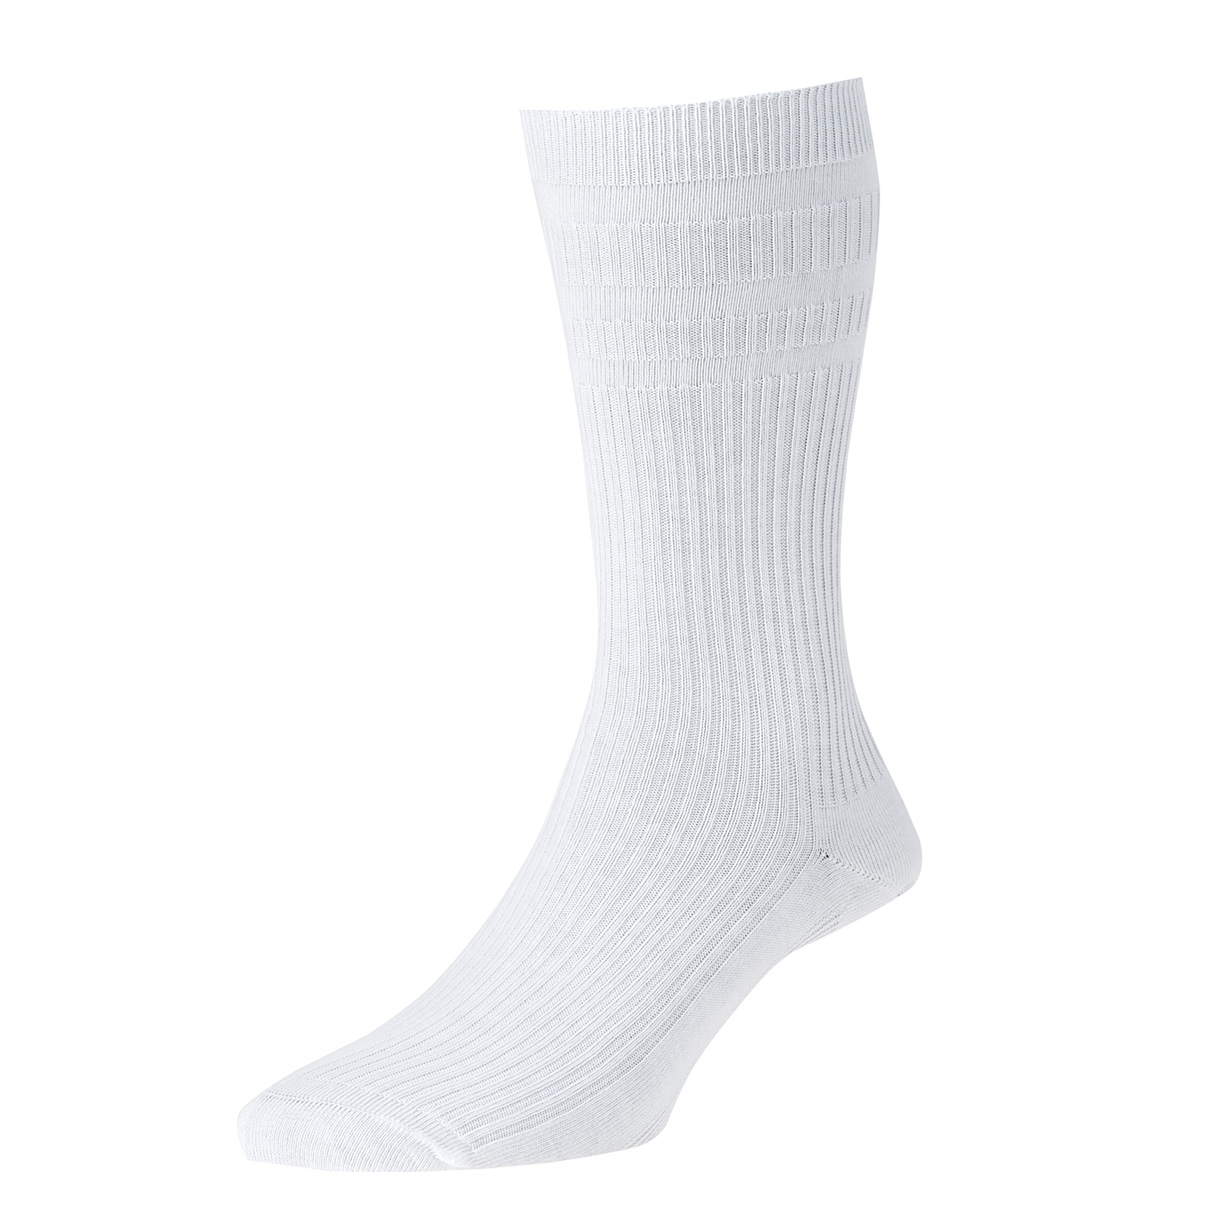 HJ Hall Softop Mens Cotton Socks size 4-7  White HJ91